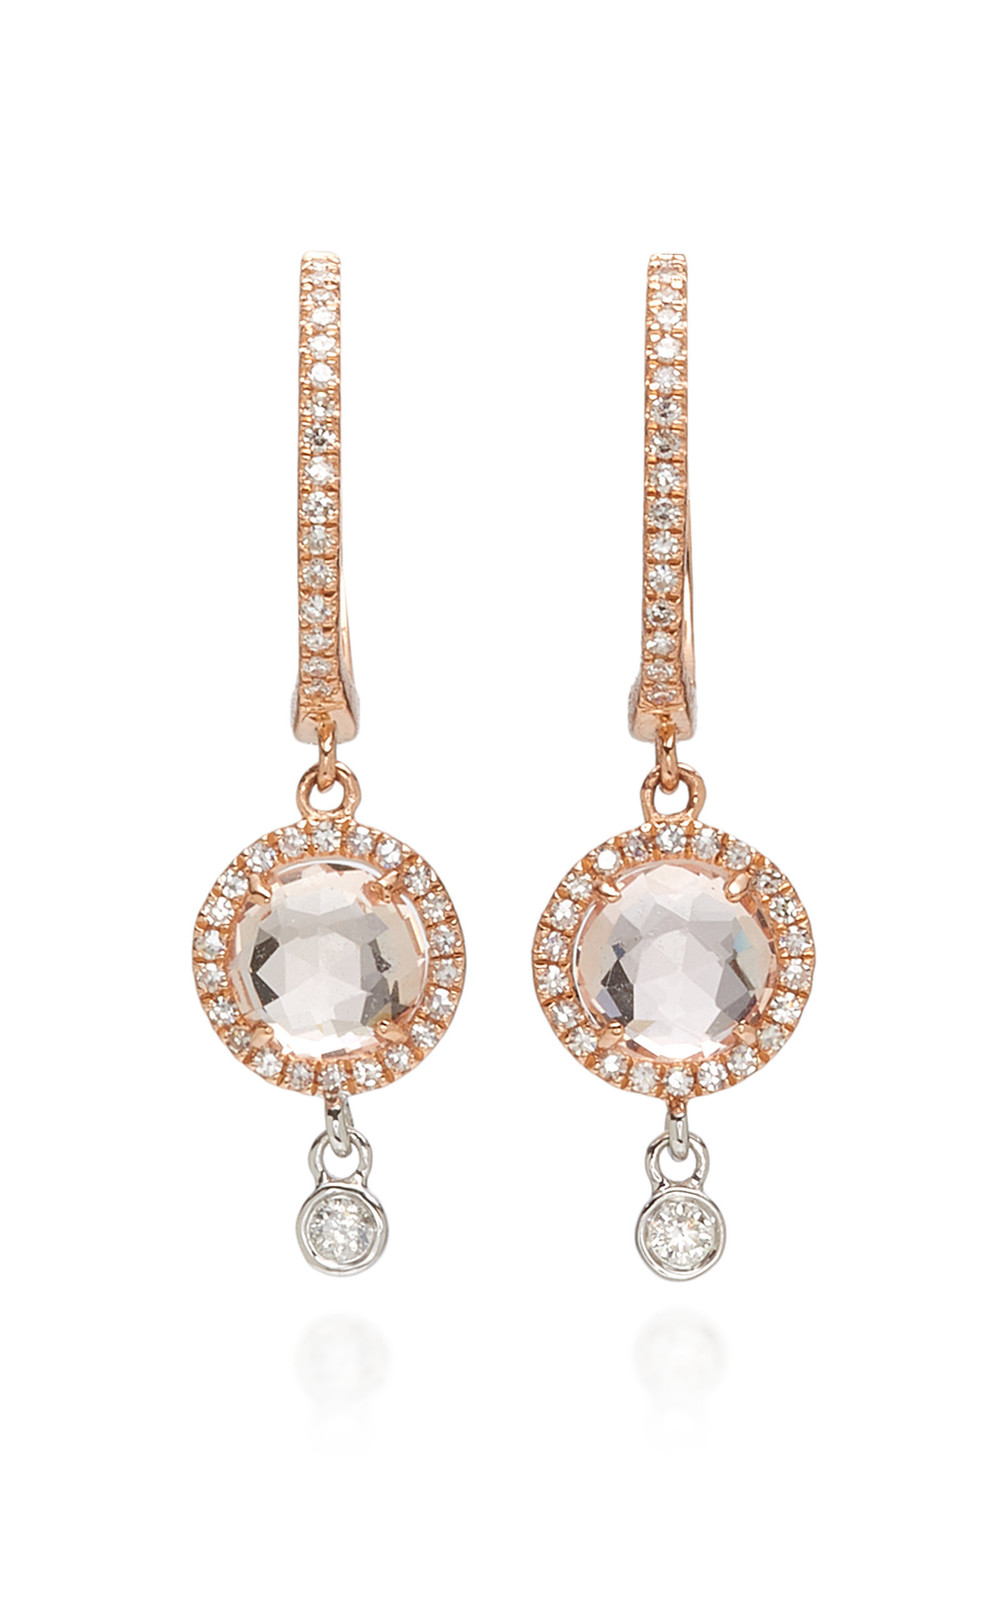 Meira T 14K Rose Gold Diamond And Morganite Earrings in pink